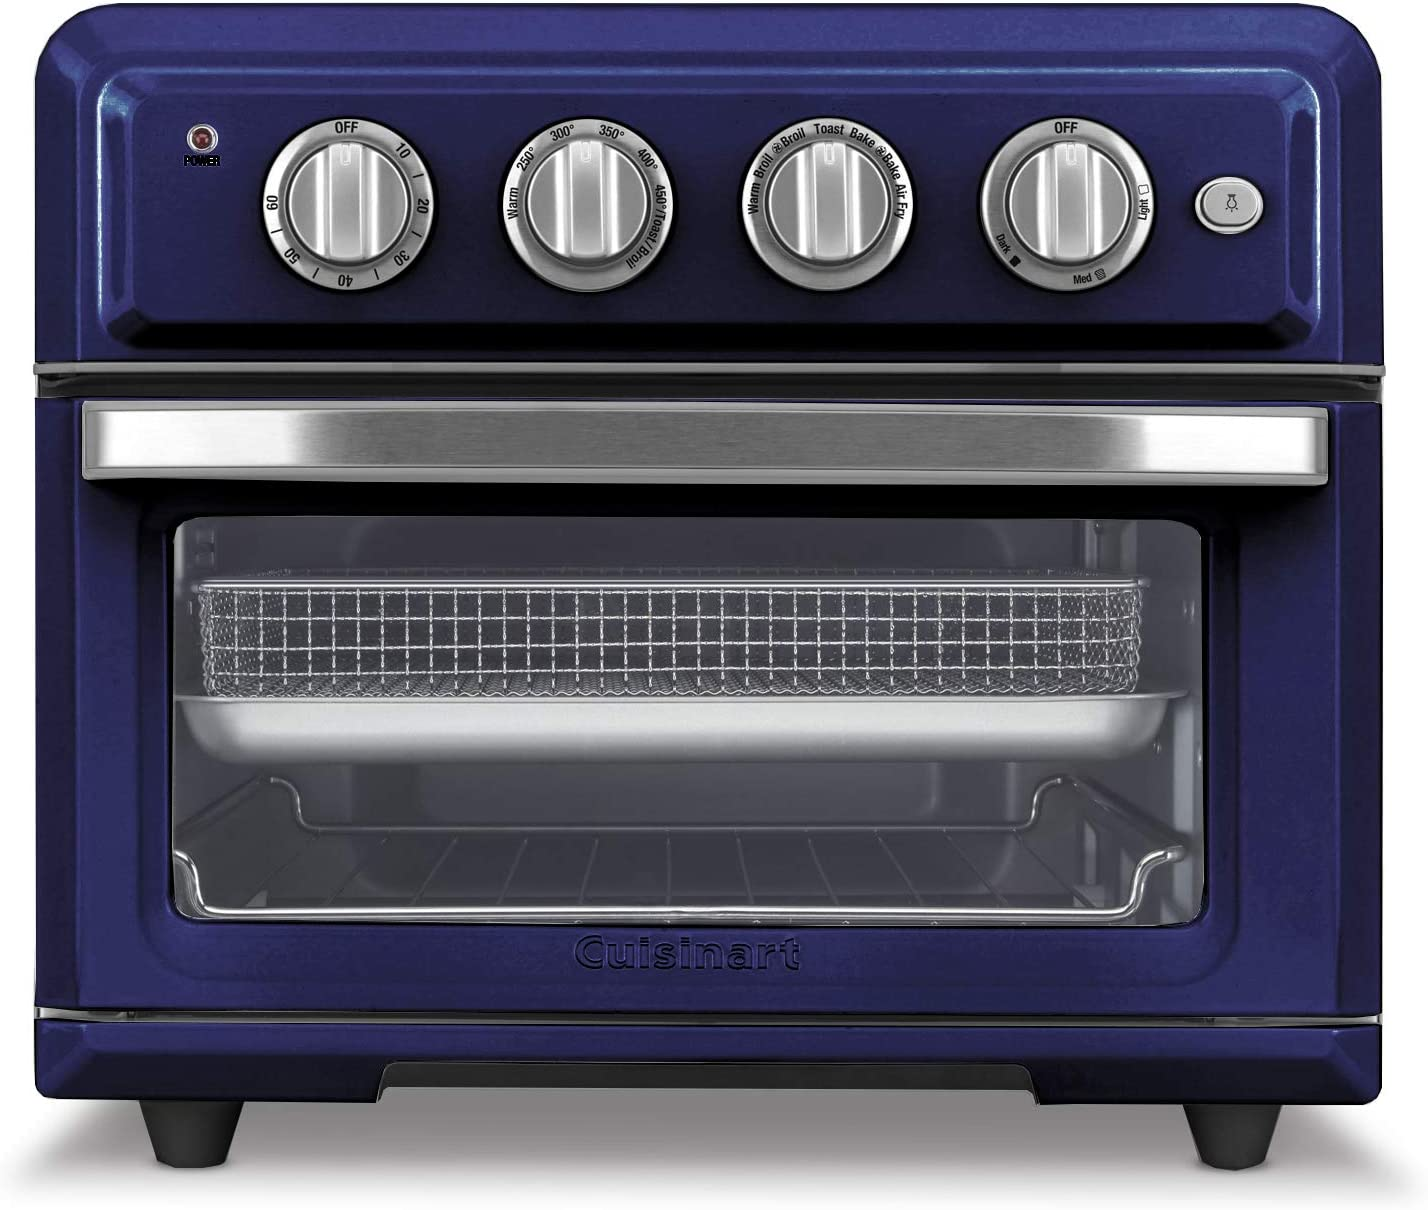 Cuisinart TOA-60NV Convection Toaster Oven Airfryer, Navy